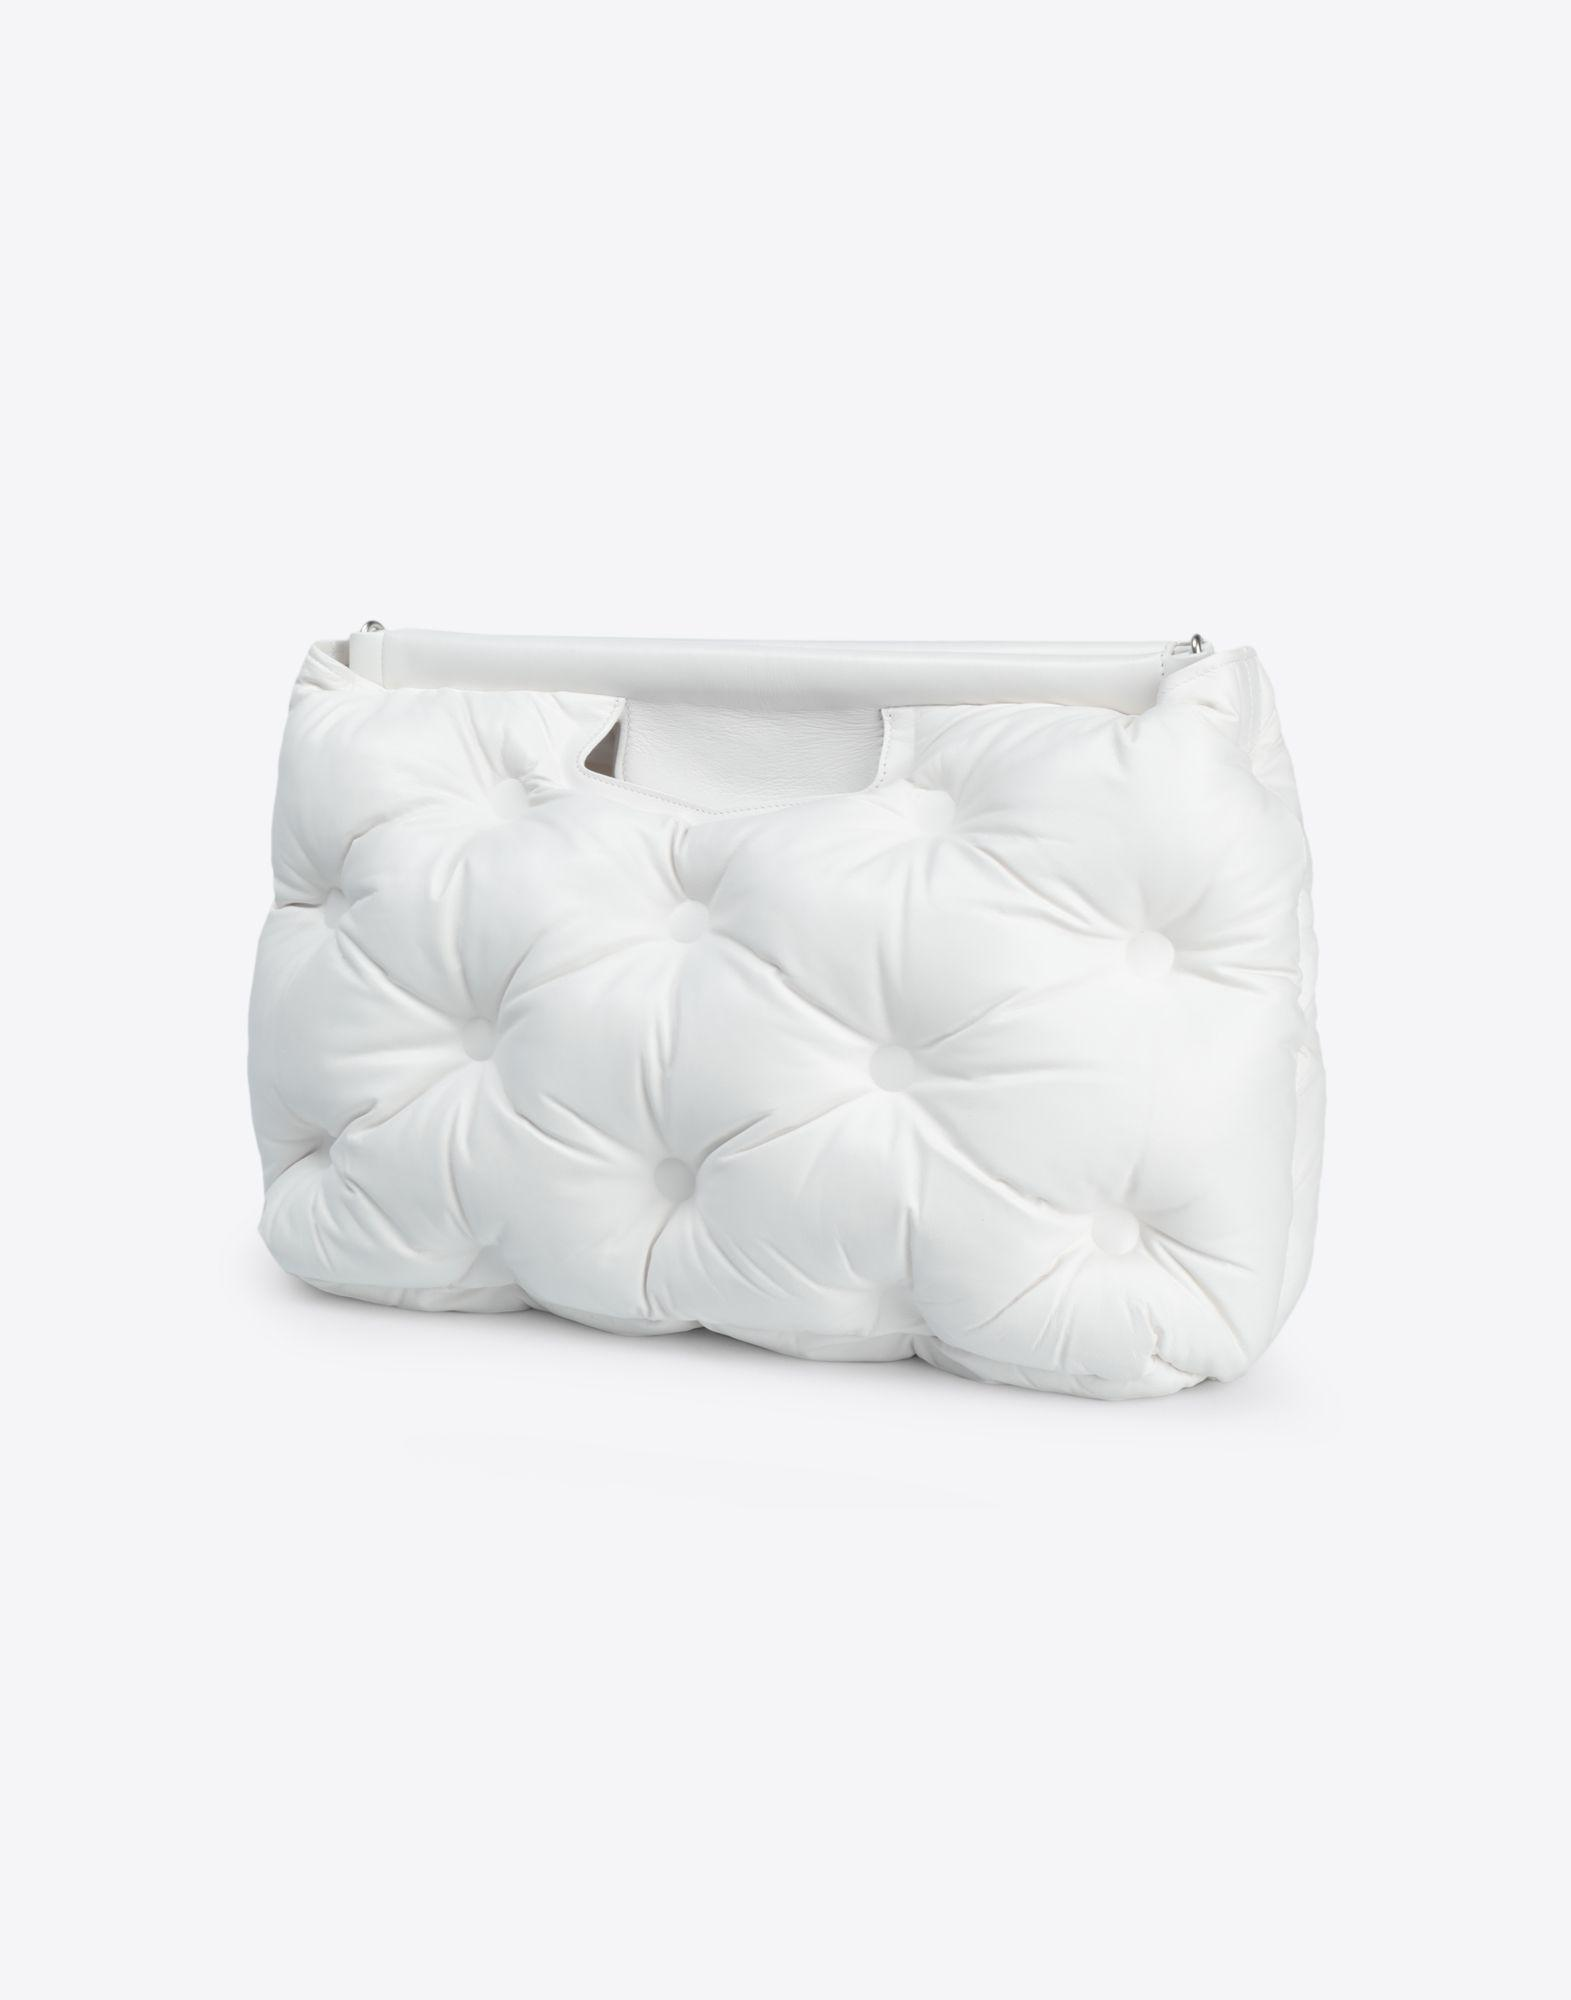 868fb2ed323 Lyst - Maison Margiela Large Glam Slam Bag in White